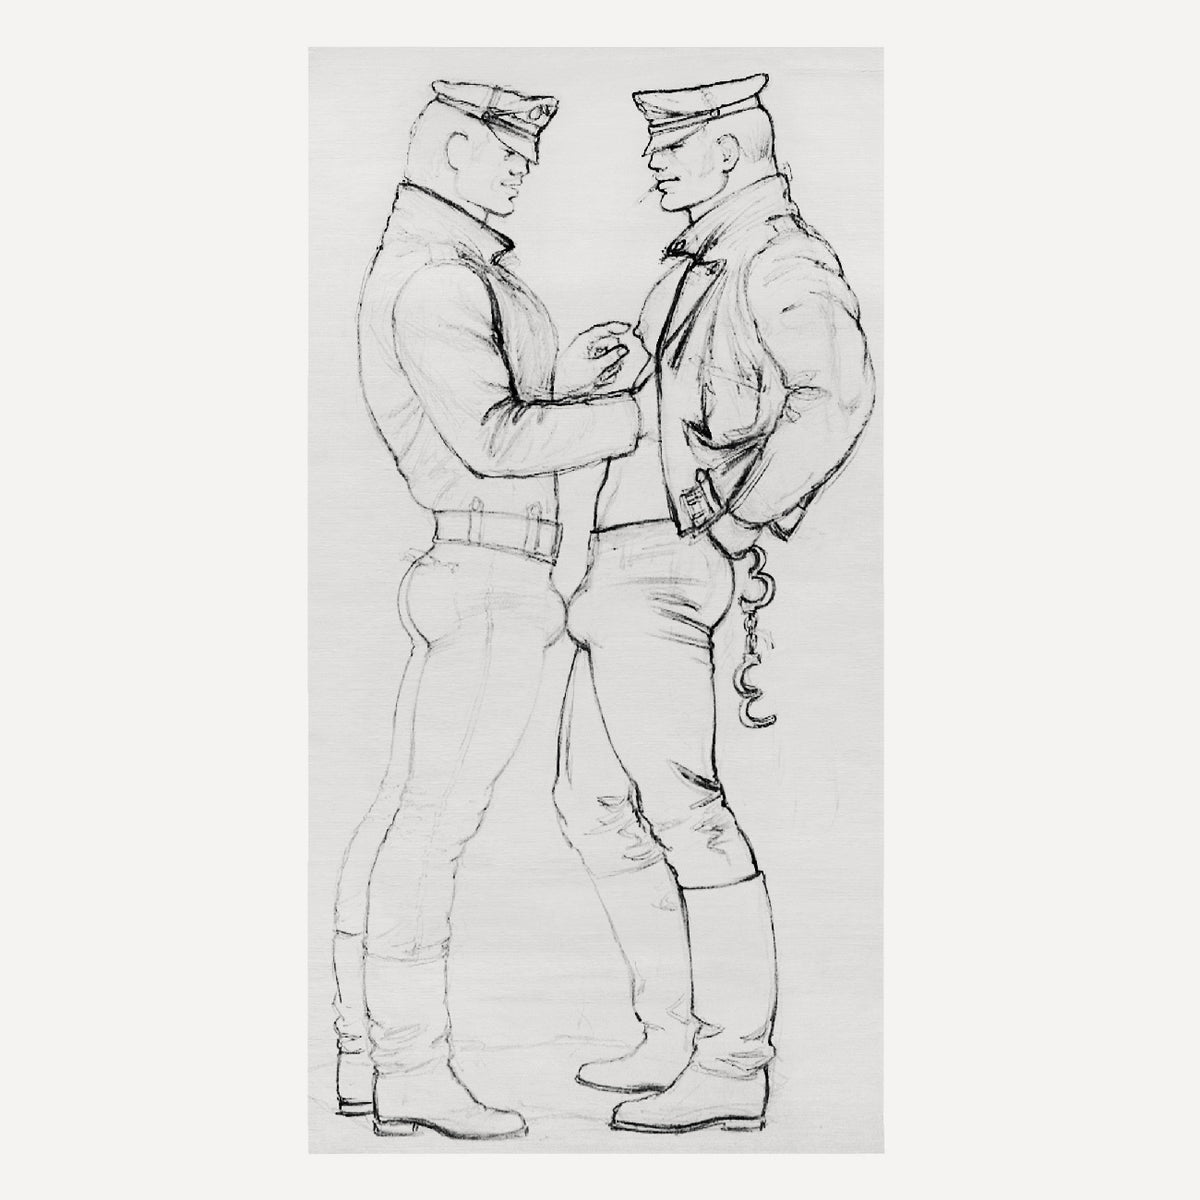 TOM OF FINLAND<br>Untitled, 1977 (0220)